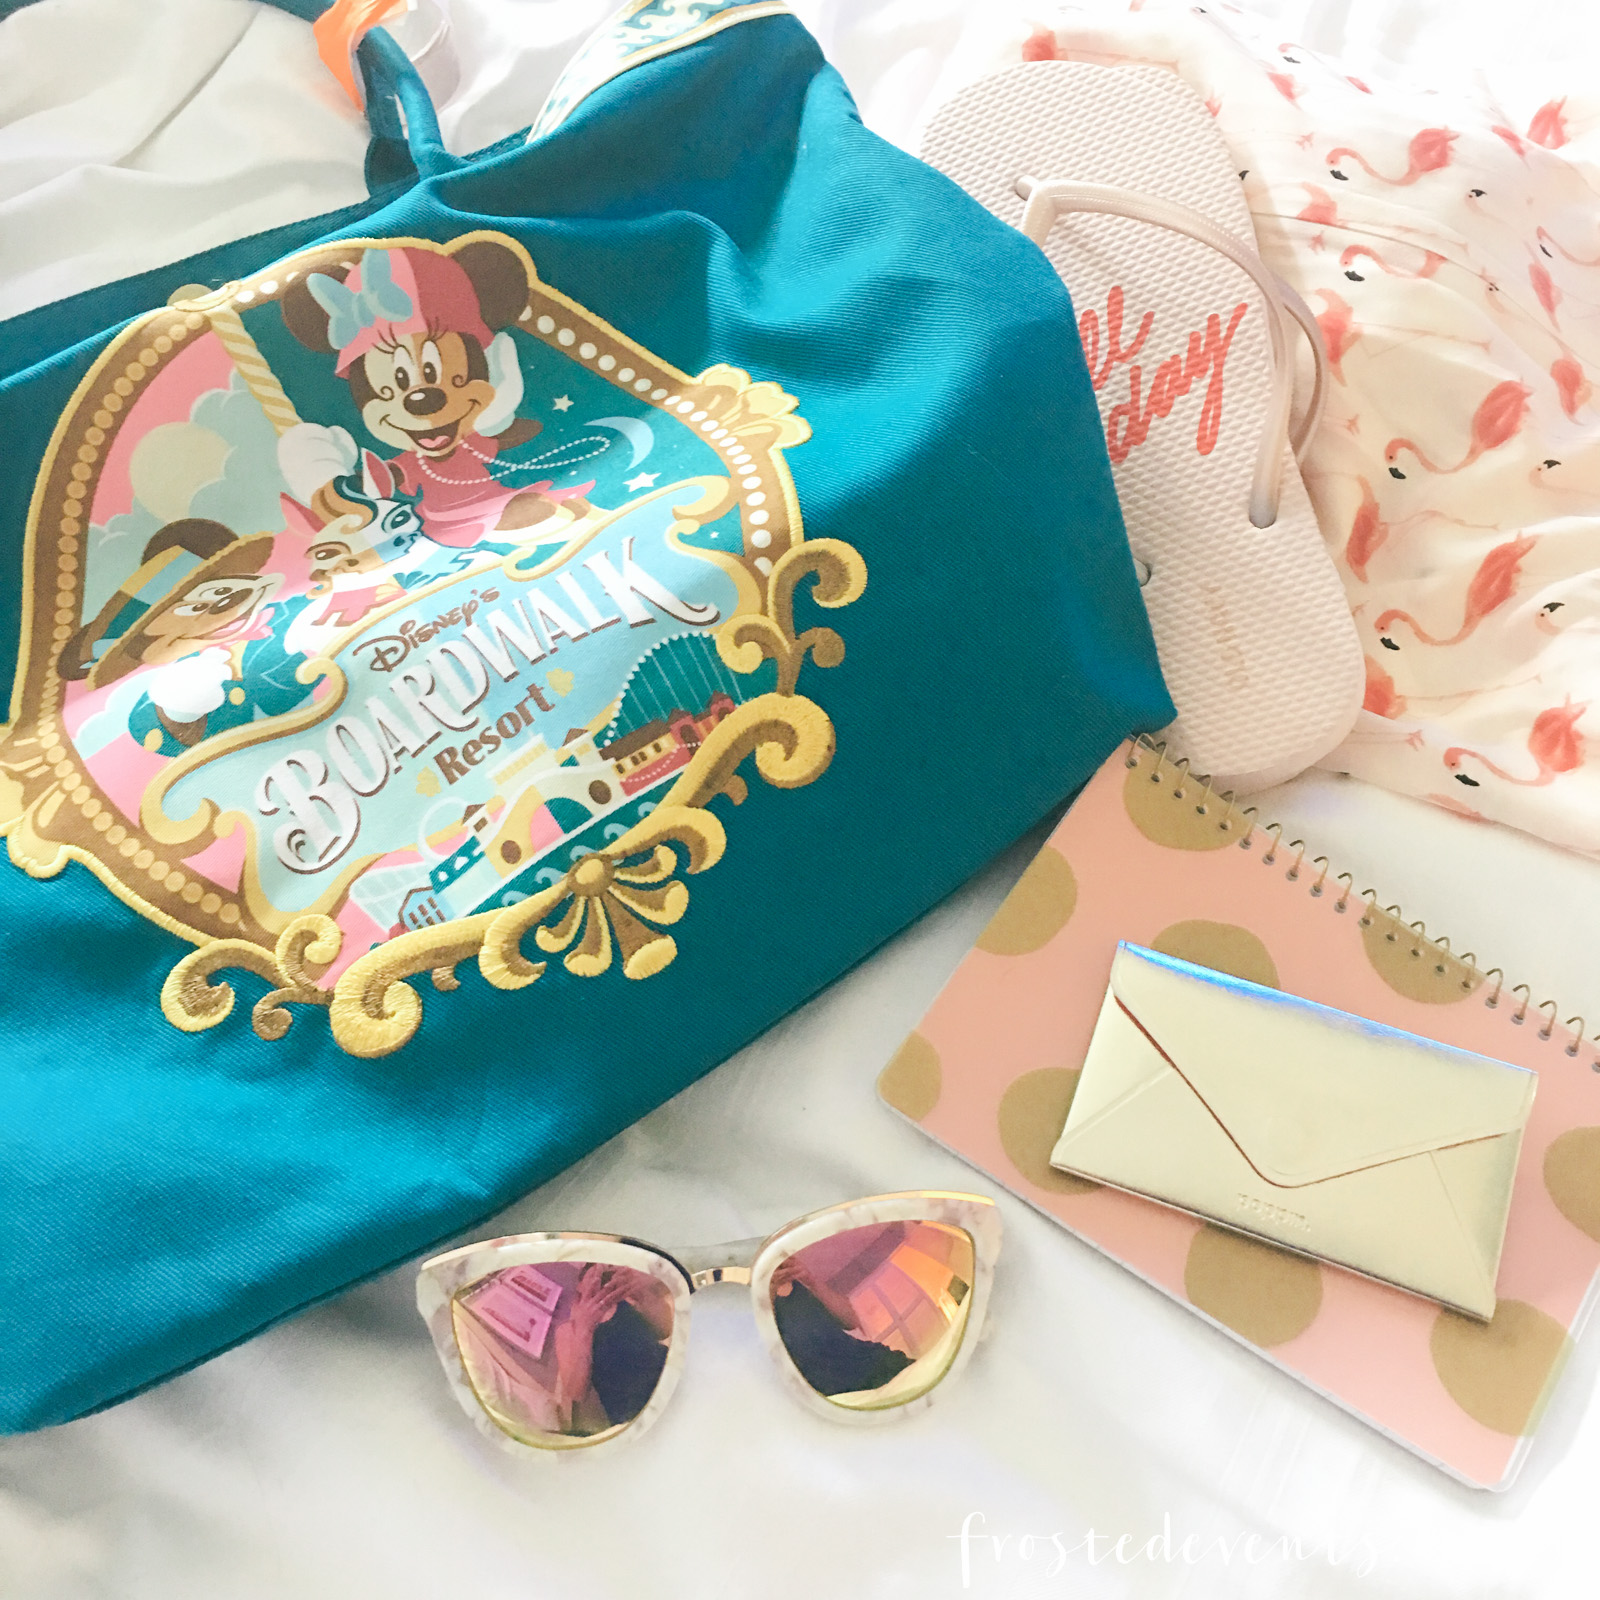 Disney Boardwalk Inn - Disney World Resorts - Disney Vacation planning via Misty Nelson family travel blogger @frostedevents